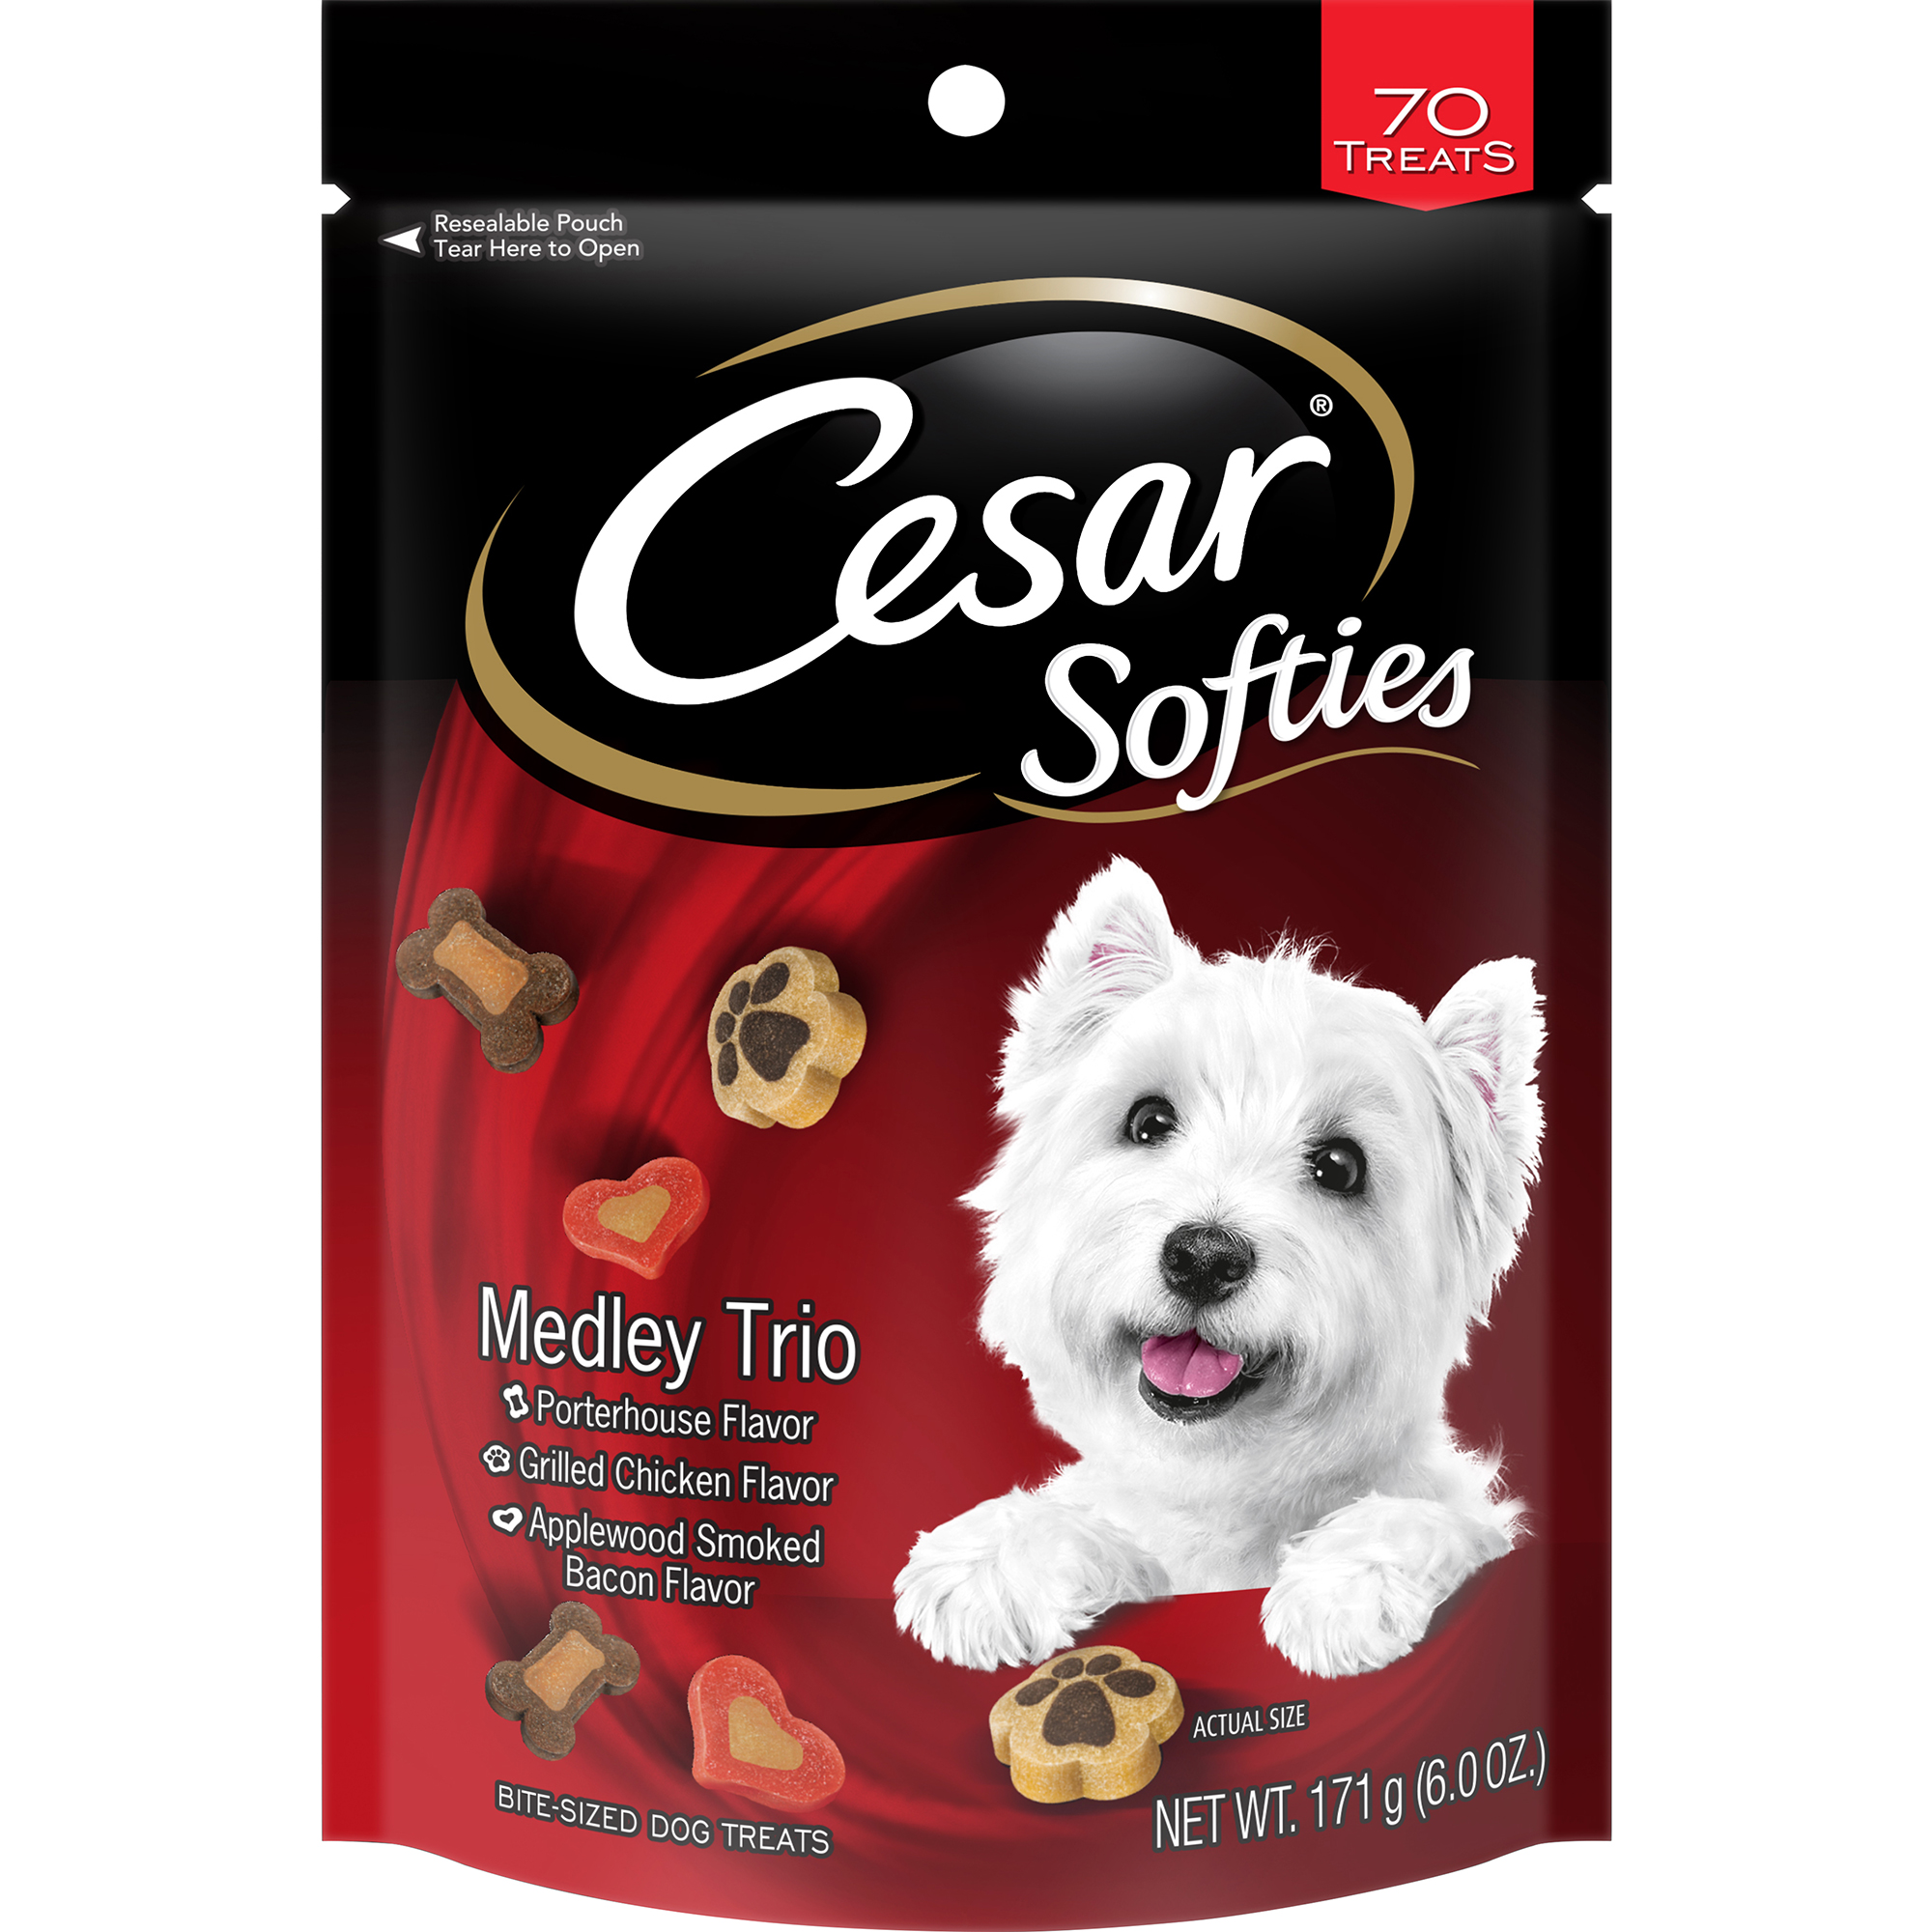 CESAR SOFTIES Dog Treats Medley Trio, 6 oz. Pouch (70 Treats)